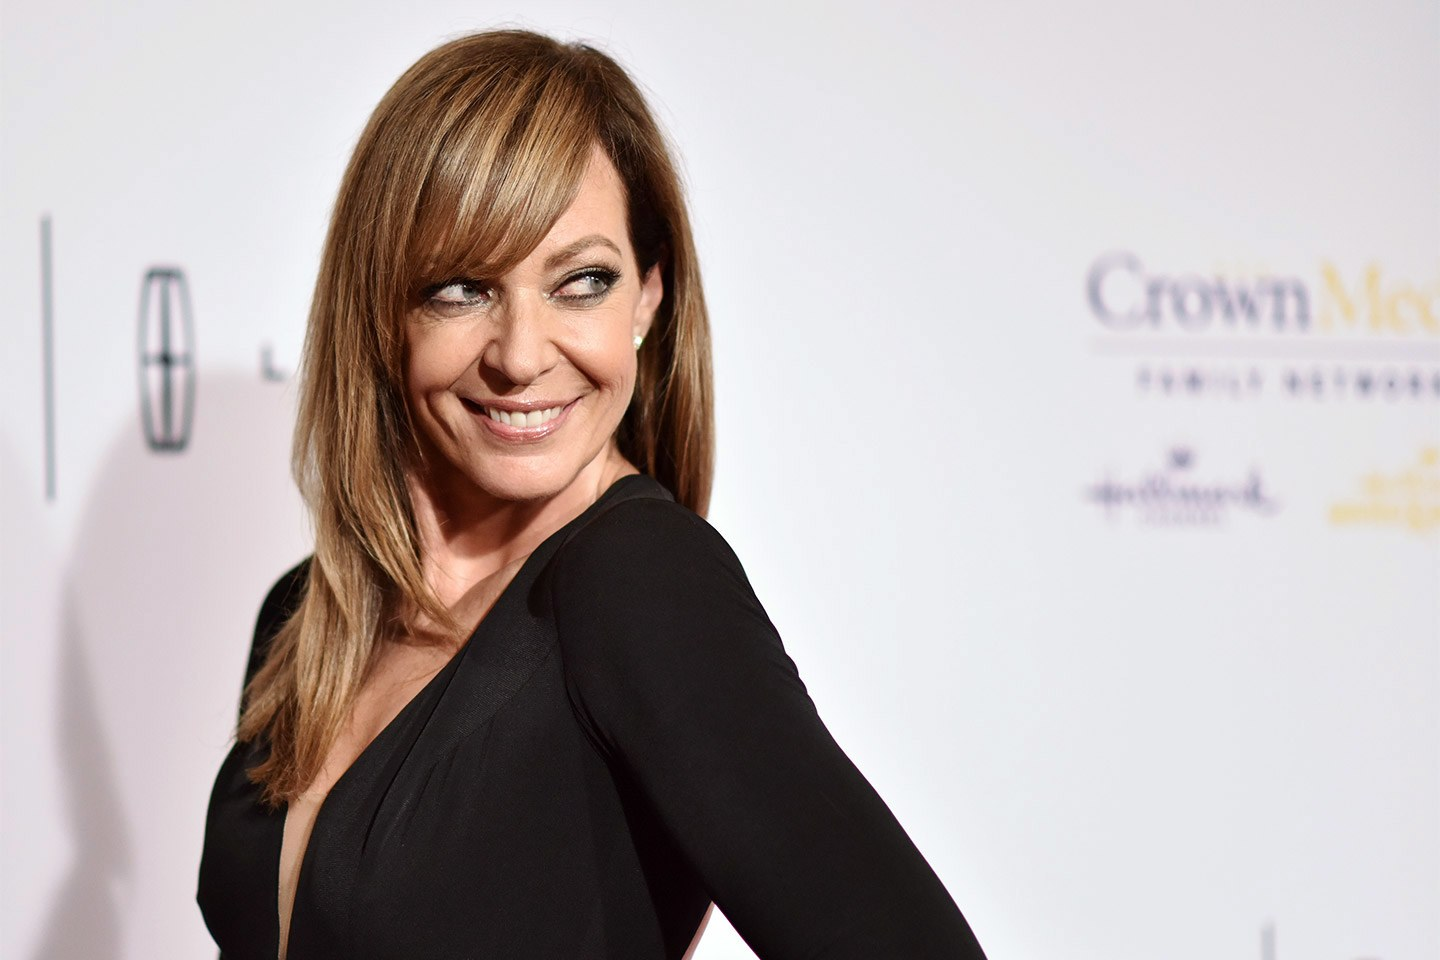 Allison Janney Wikipedia Emmys Ballot 2014 From The 1440x960